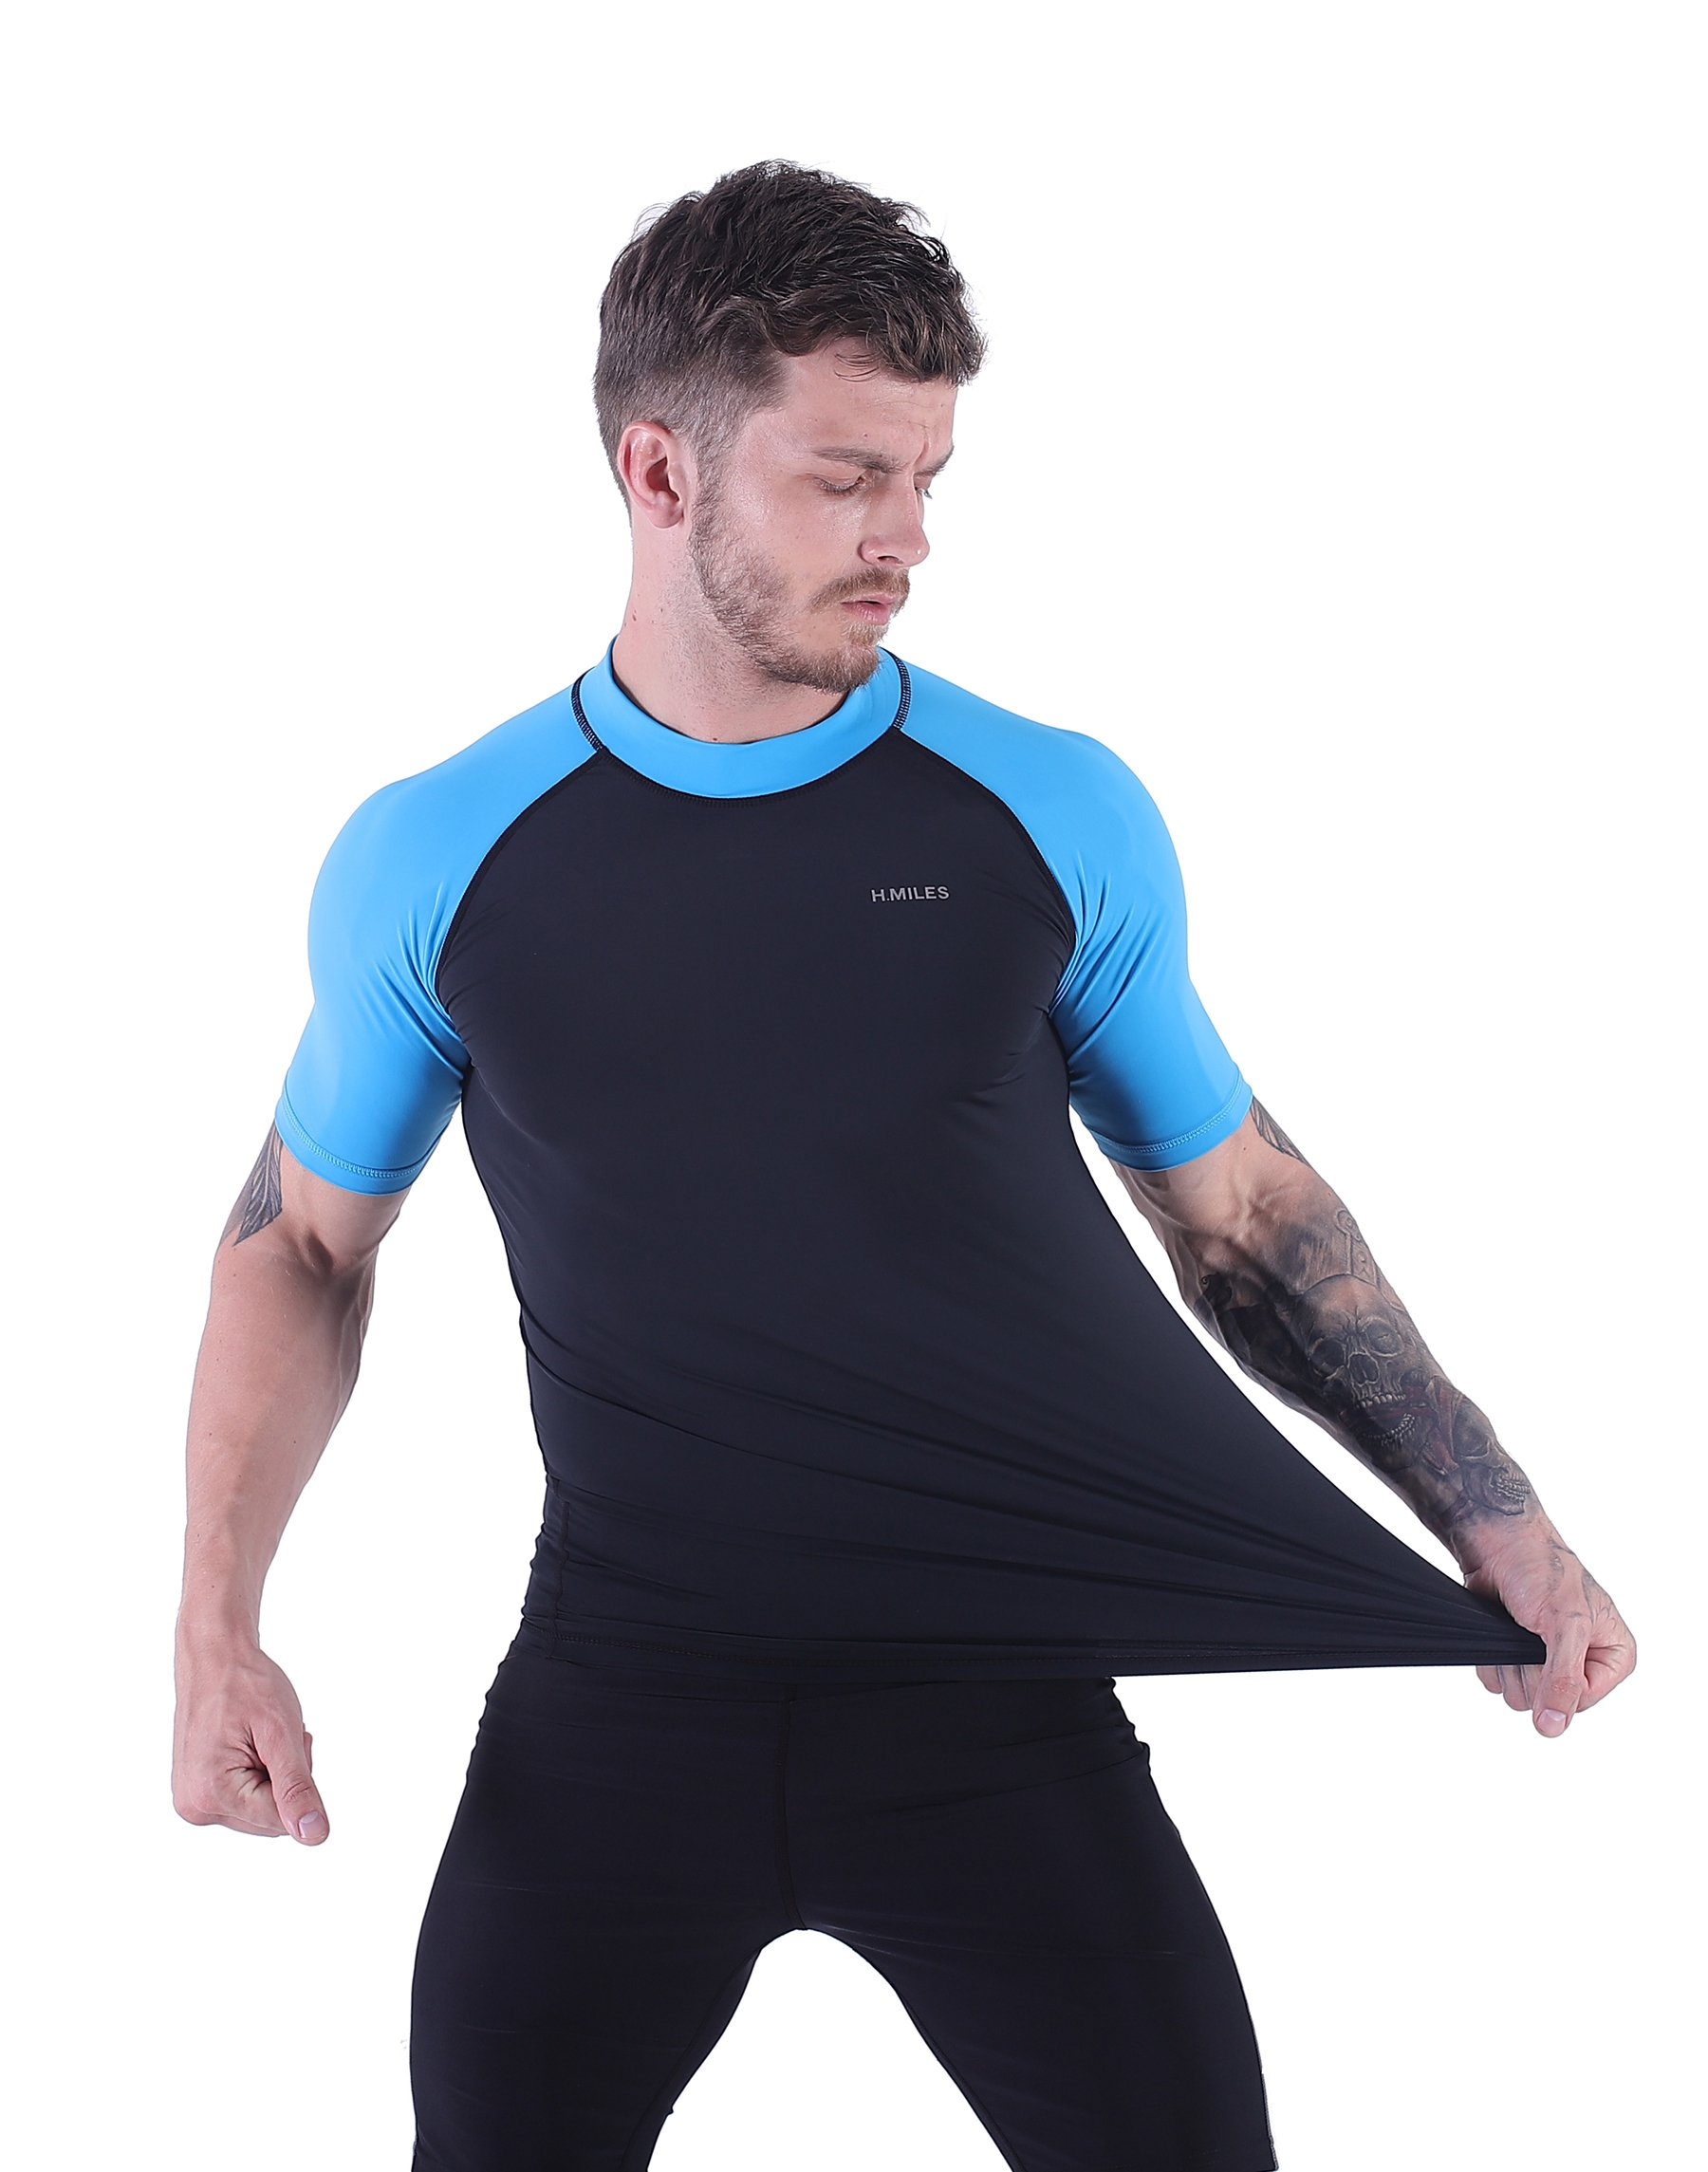 H.MILES Mens UV Protection Rash Guard Swim Shirts Short Sleeve Moisture Wicking Swimming Shirts Workout Swimwear Tops Black/Blue-M by H.MILES